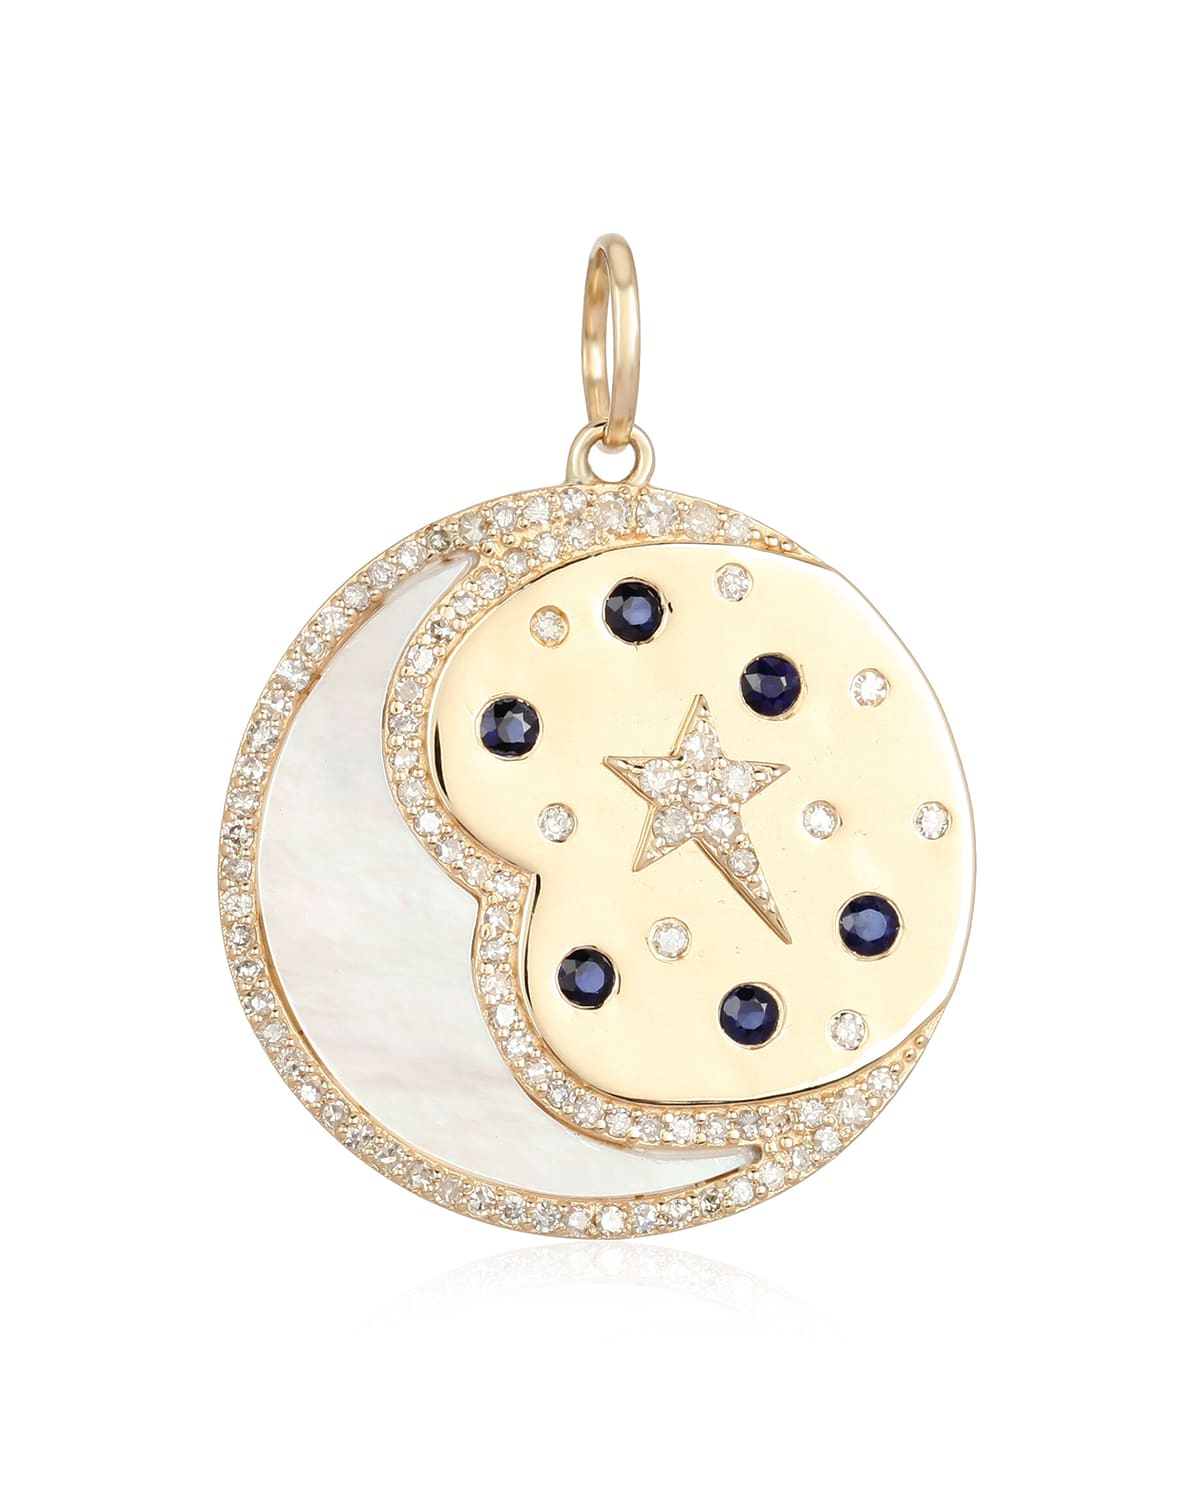 Celestial Mother-of-Pearl Crescent Moon Pendant